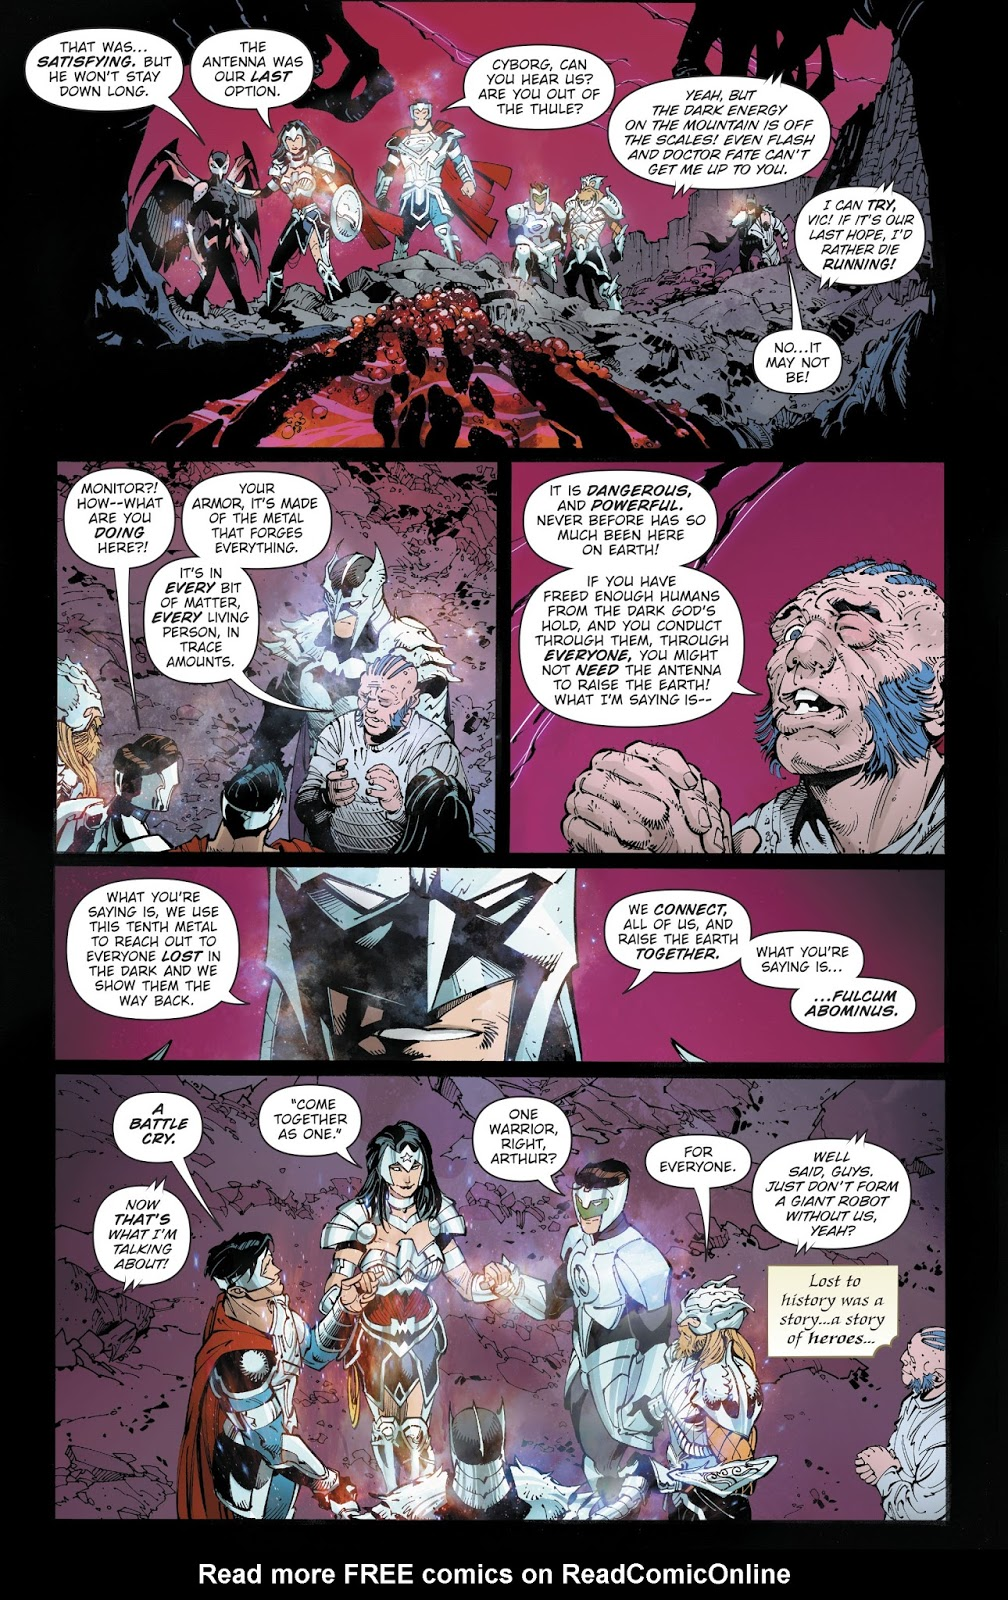 Explaining the Ending of Dark Nights: Metal - The Fanboy SEO